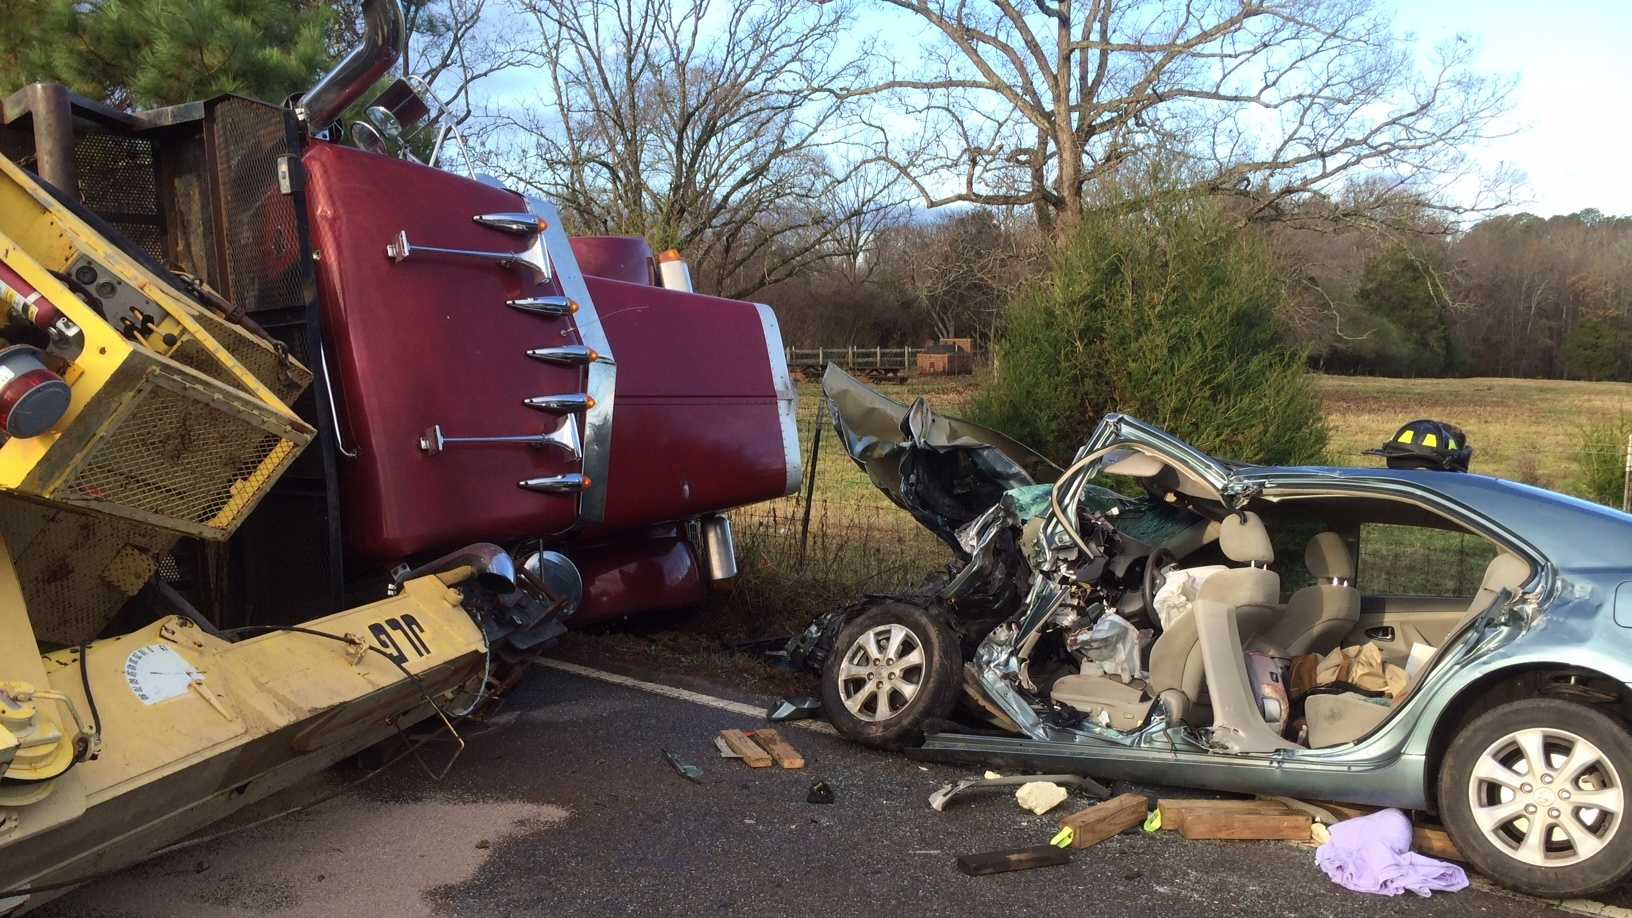 This wreck between a flatbed truck hauling a crane and a Toyota Camry is under investigation.